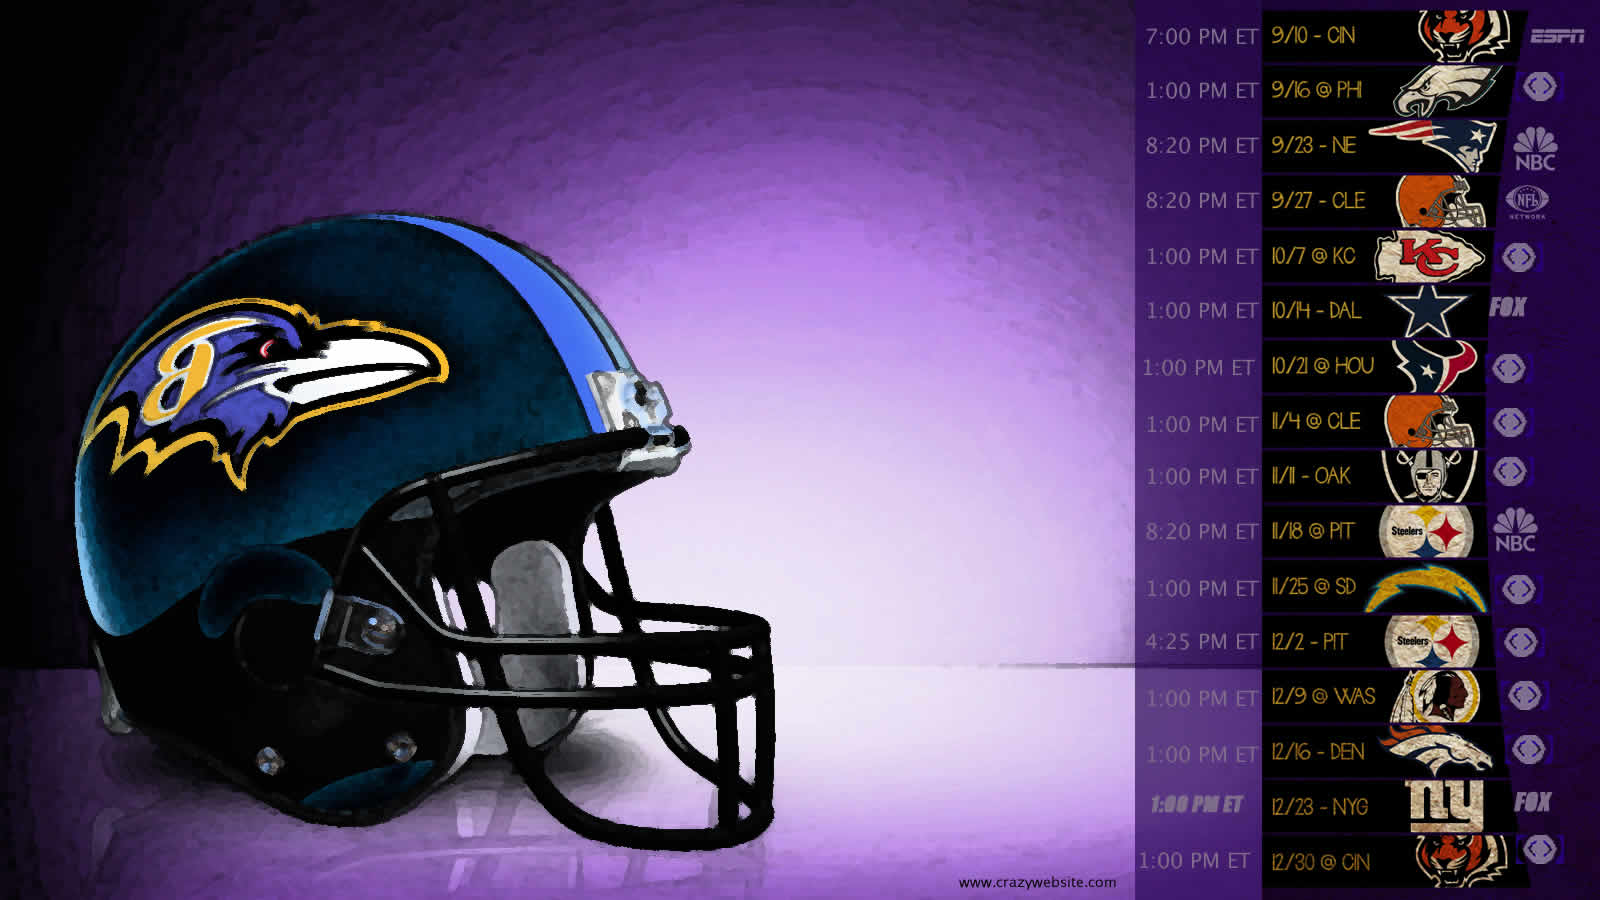 Baltimore Ravens 2012 game schedule football team wallpaper click 1600x900